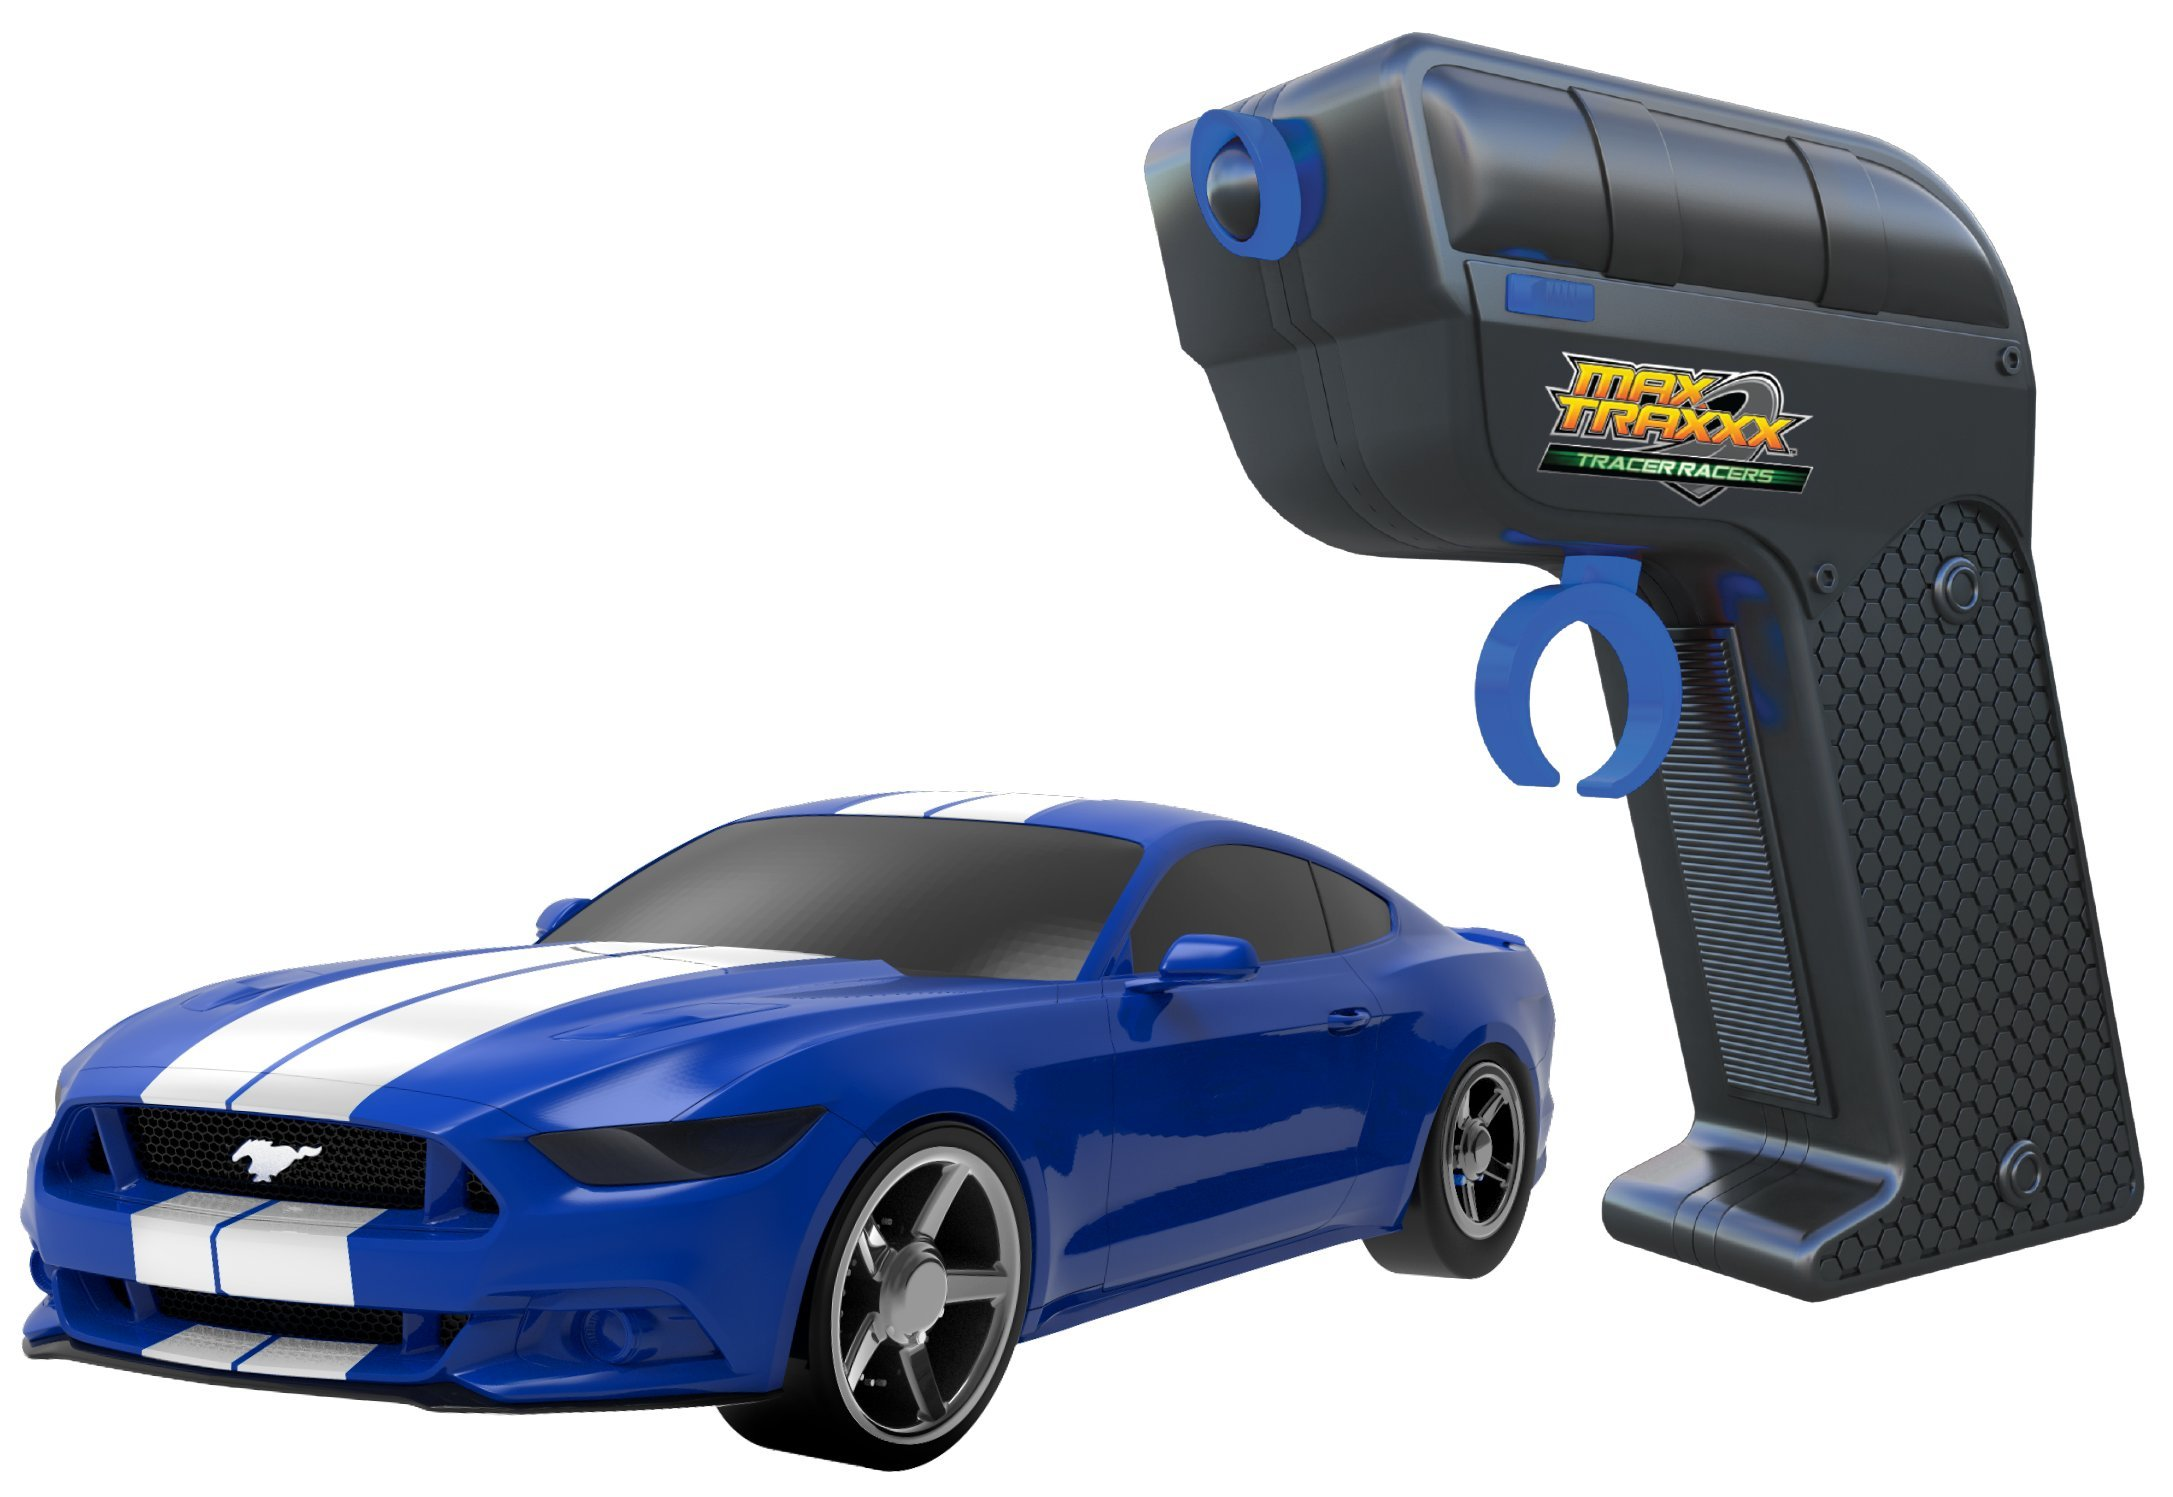 Max Traxxx R/C Tracer Racers High Speed Remote Control Stunt Track Set with Officially Licensed 1:64 Scale Ford Mustang Car by Max Traxxx (Image #5)